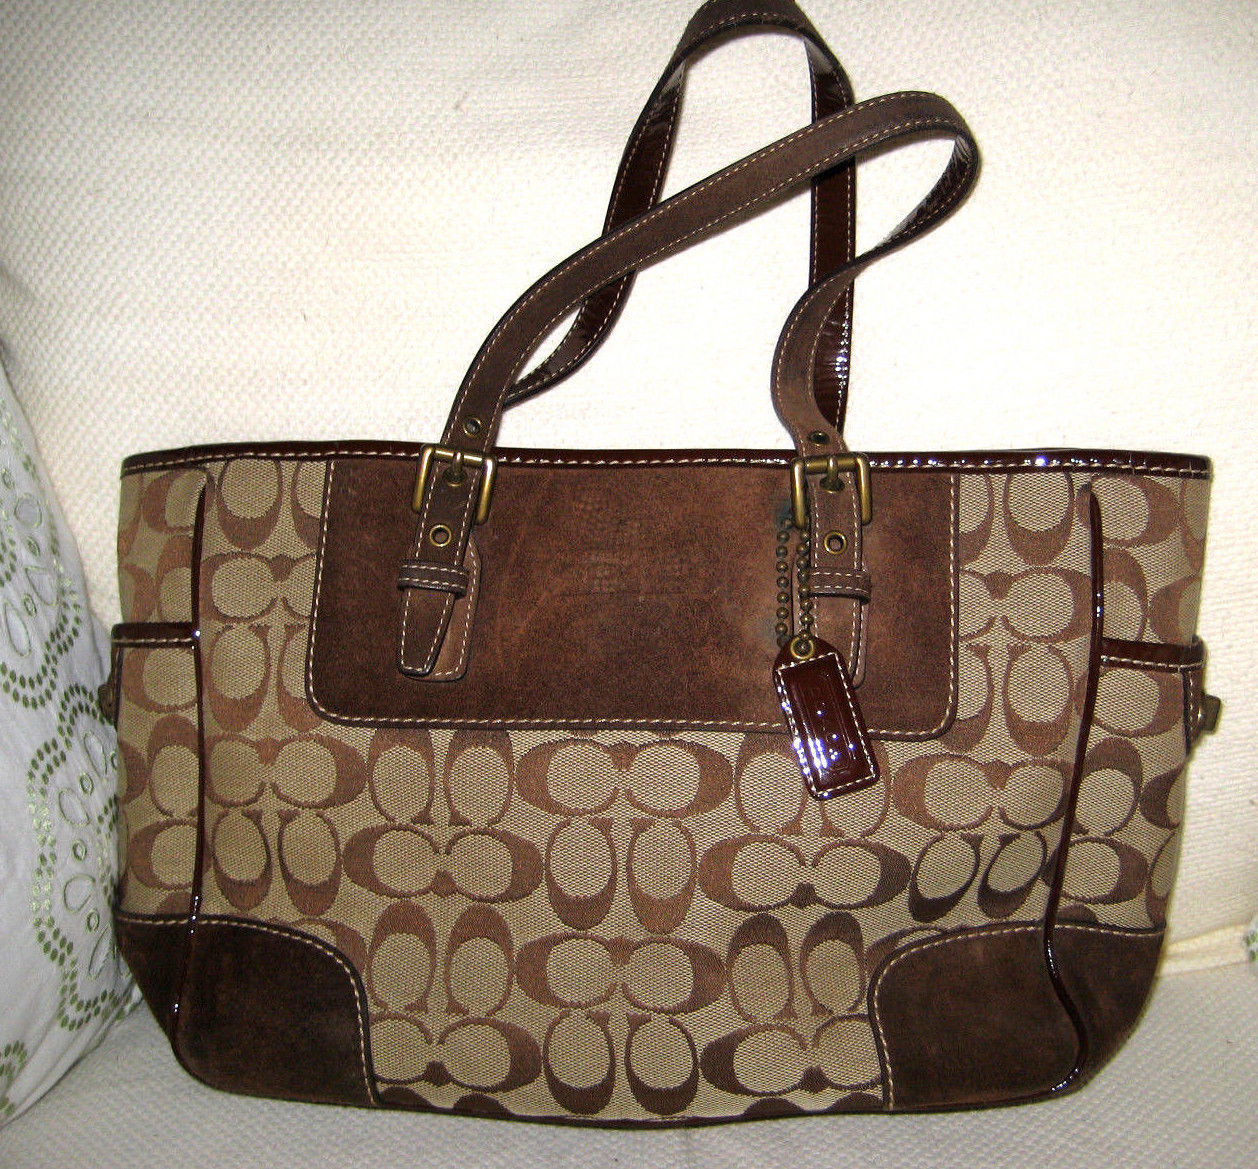 Authentic COACH Tote Bag Brown Suede and 50 similar items. 57 5db2bbfa0ffb3